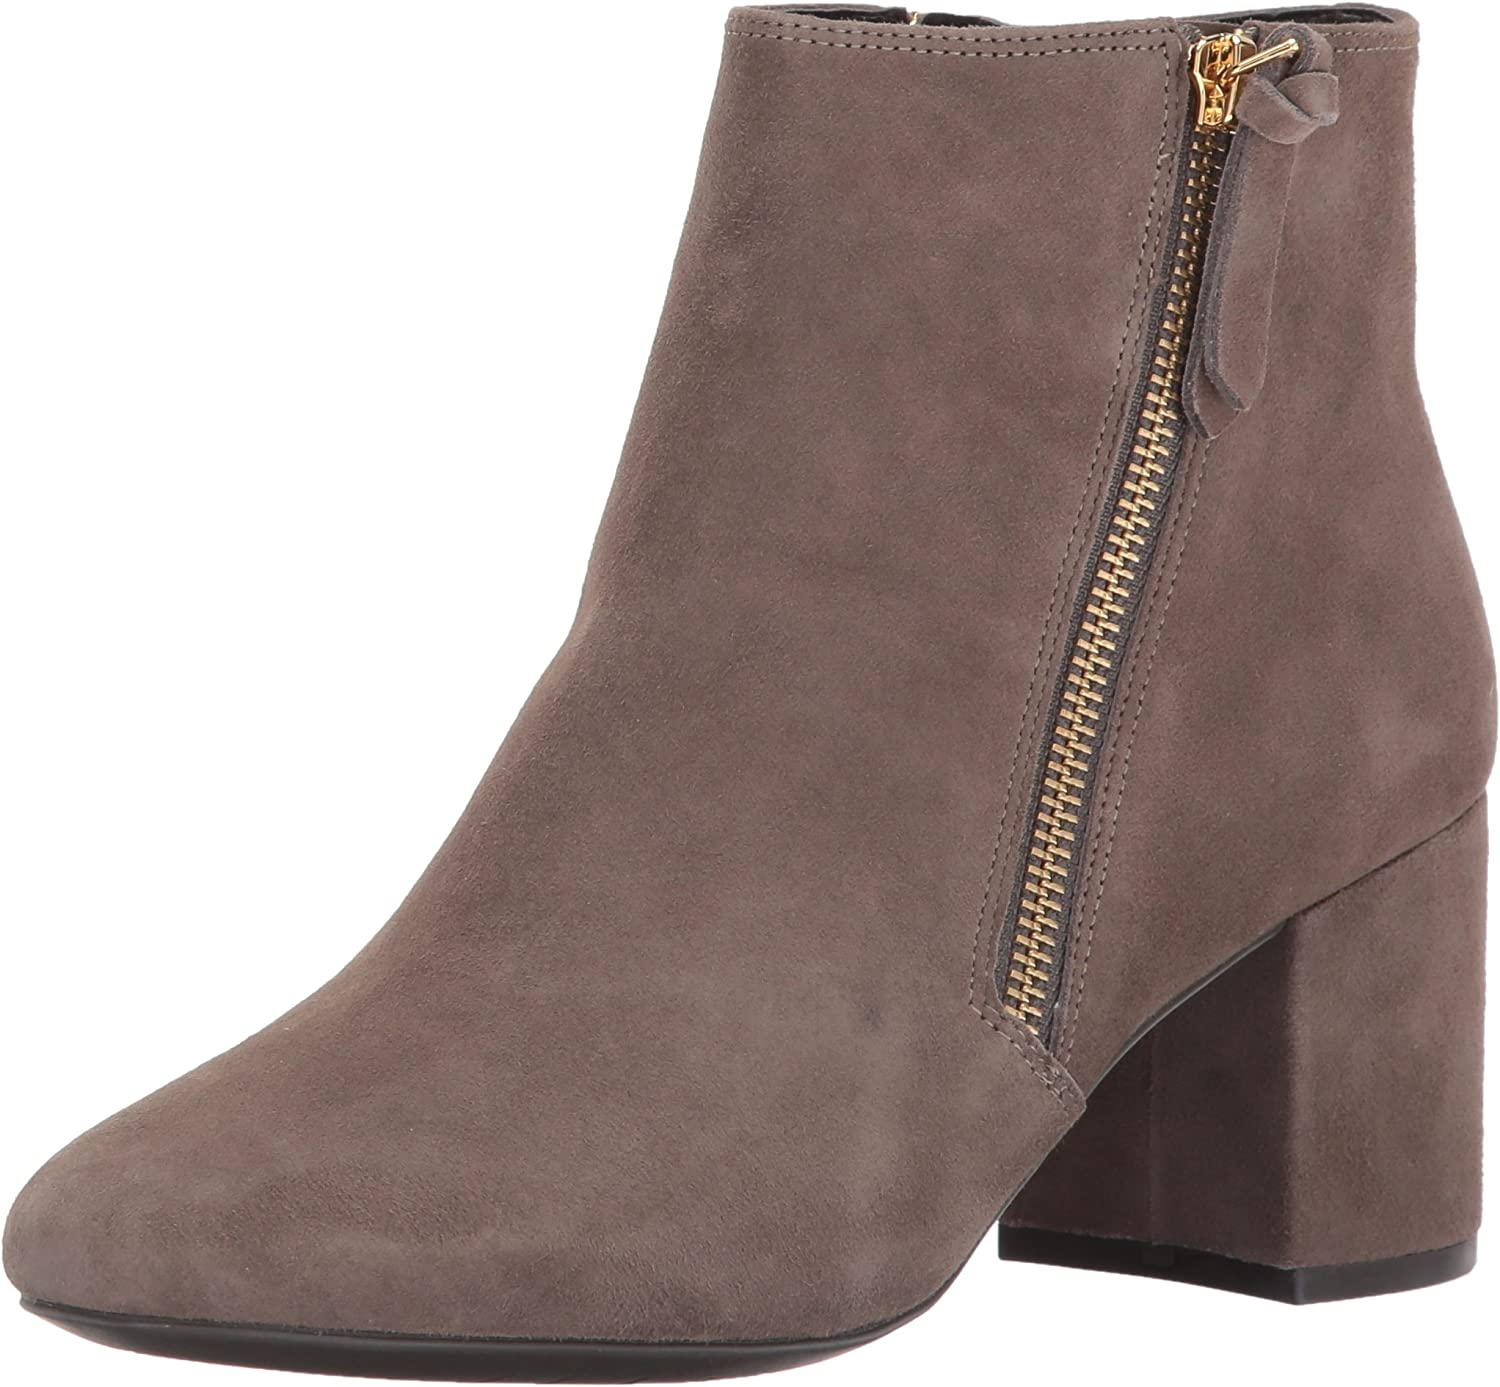 Cole Haan Womens Saylor Grand Bootie Ii Ankle Boot